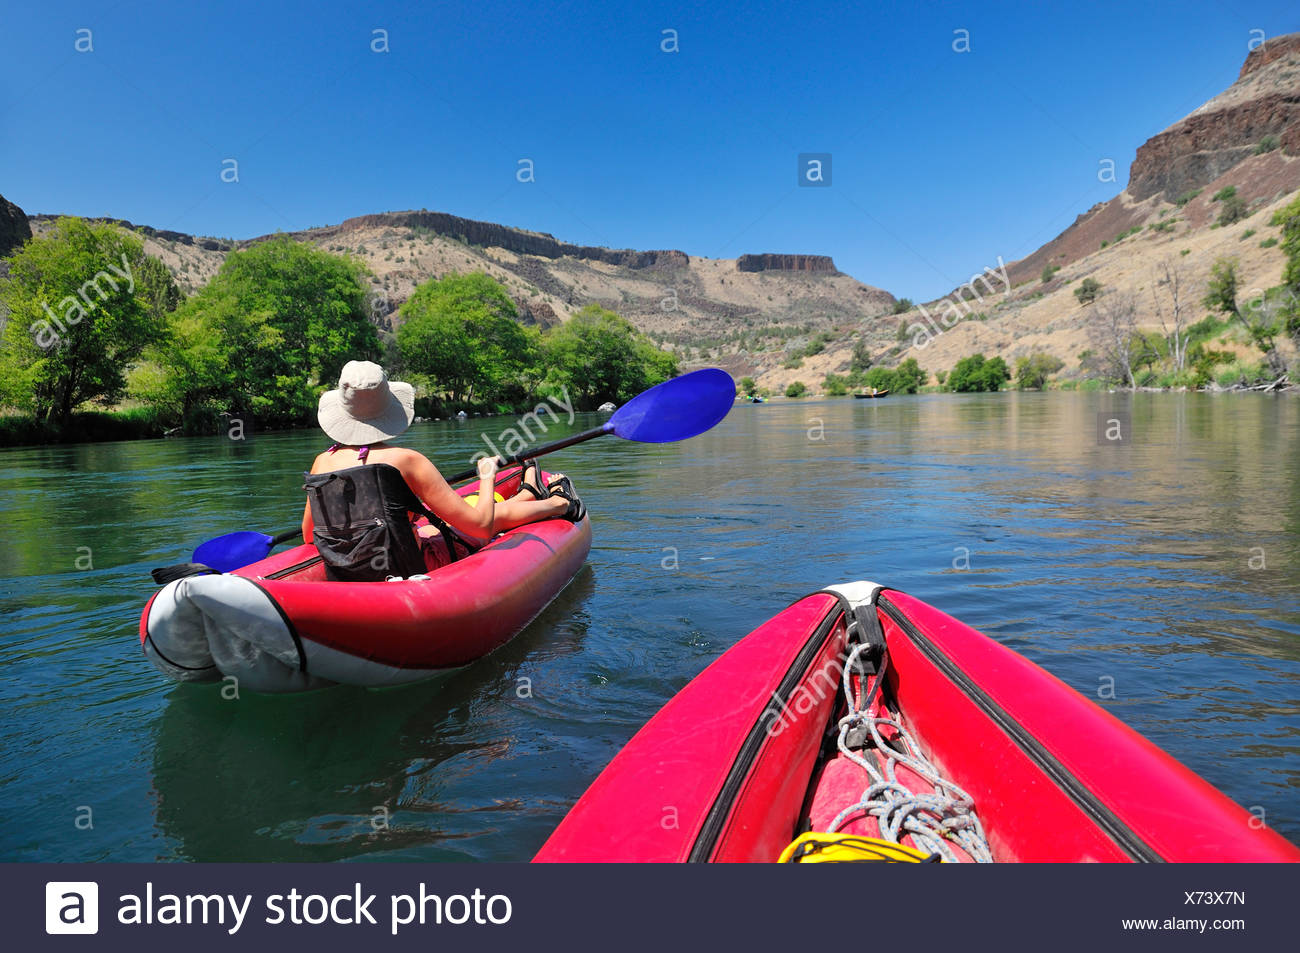 A woman in an inflatable raft on the Deschutes River in Oregon. - Stock Image